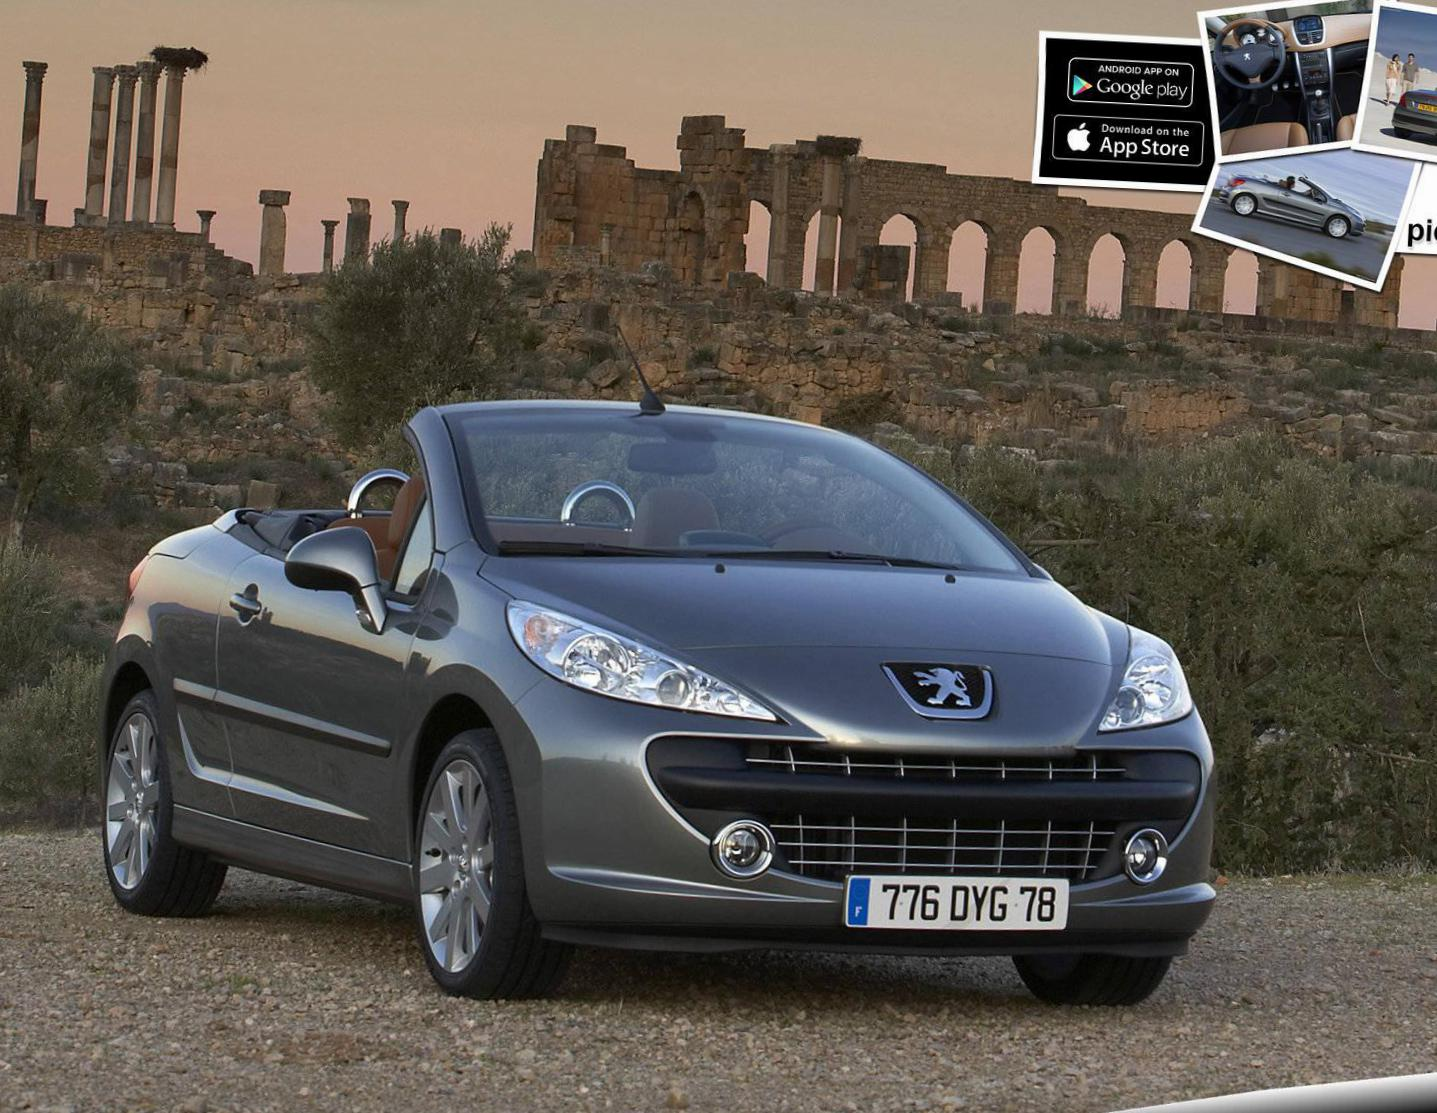 peugeot 207 cc photos and specs. photo: peugeot 207 cc tuning and 26